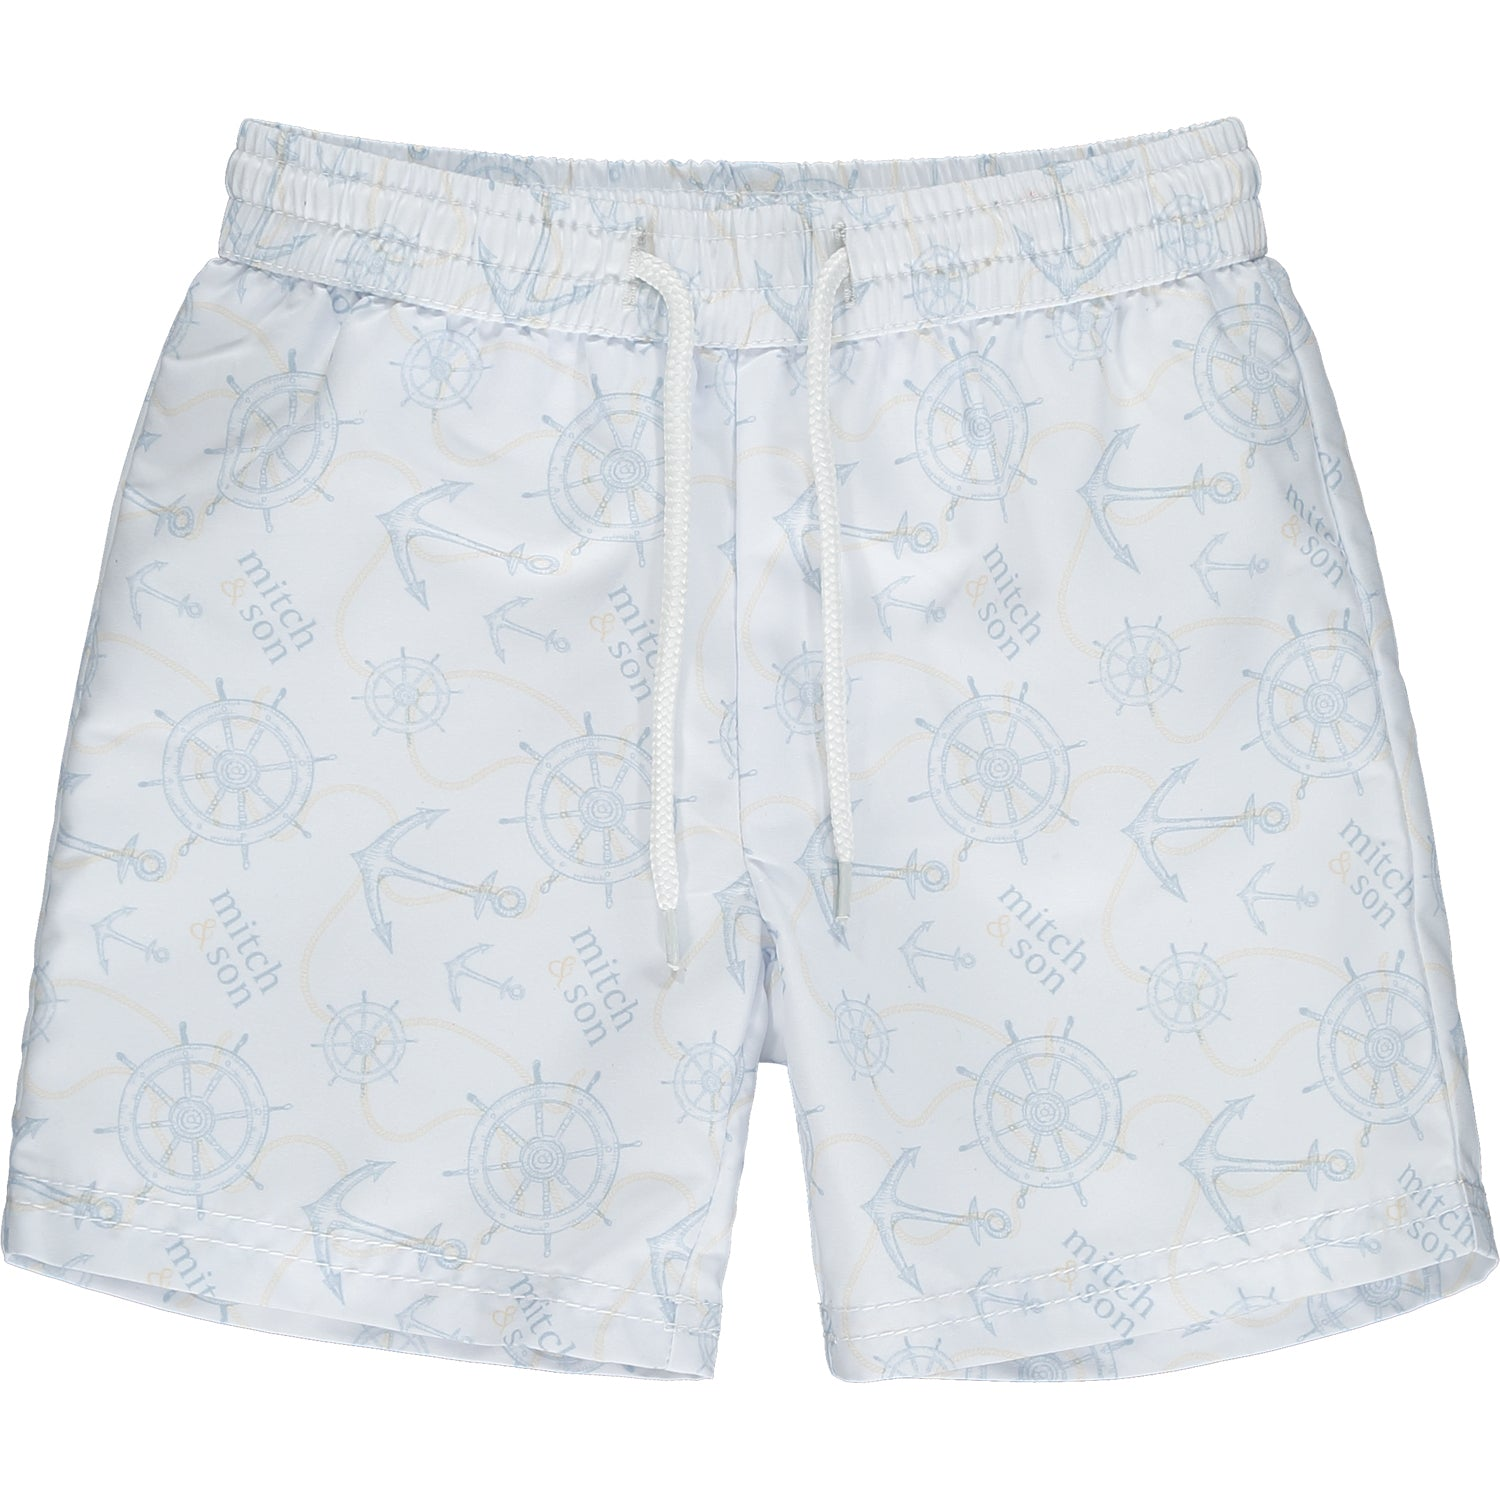 white swim shorts